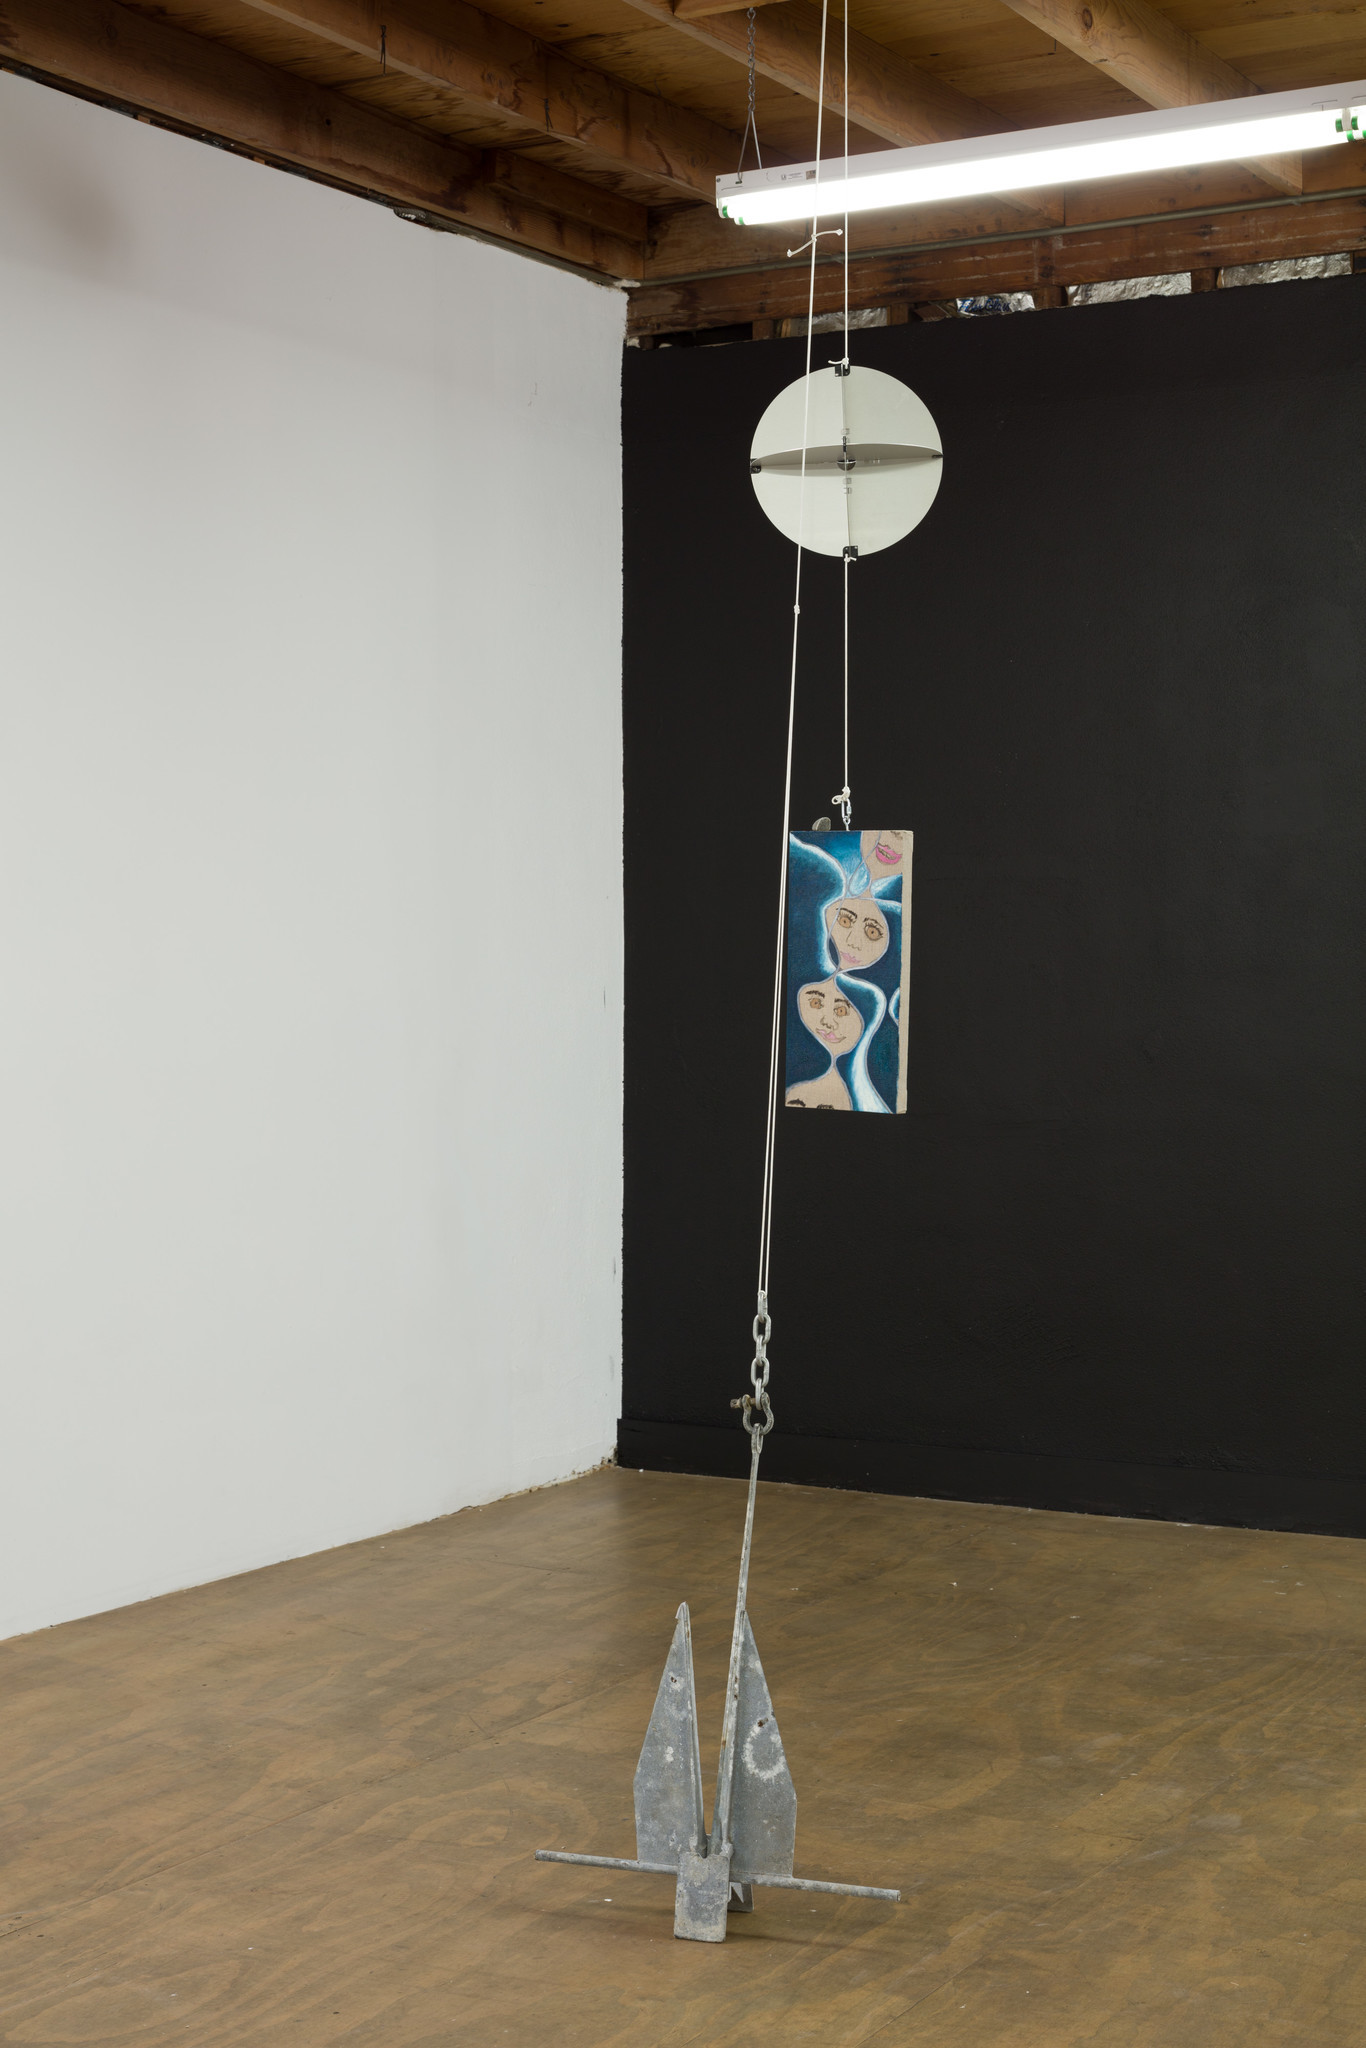 Leidy Churchman at Reena Spaulings Fine Art